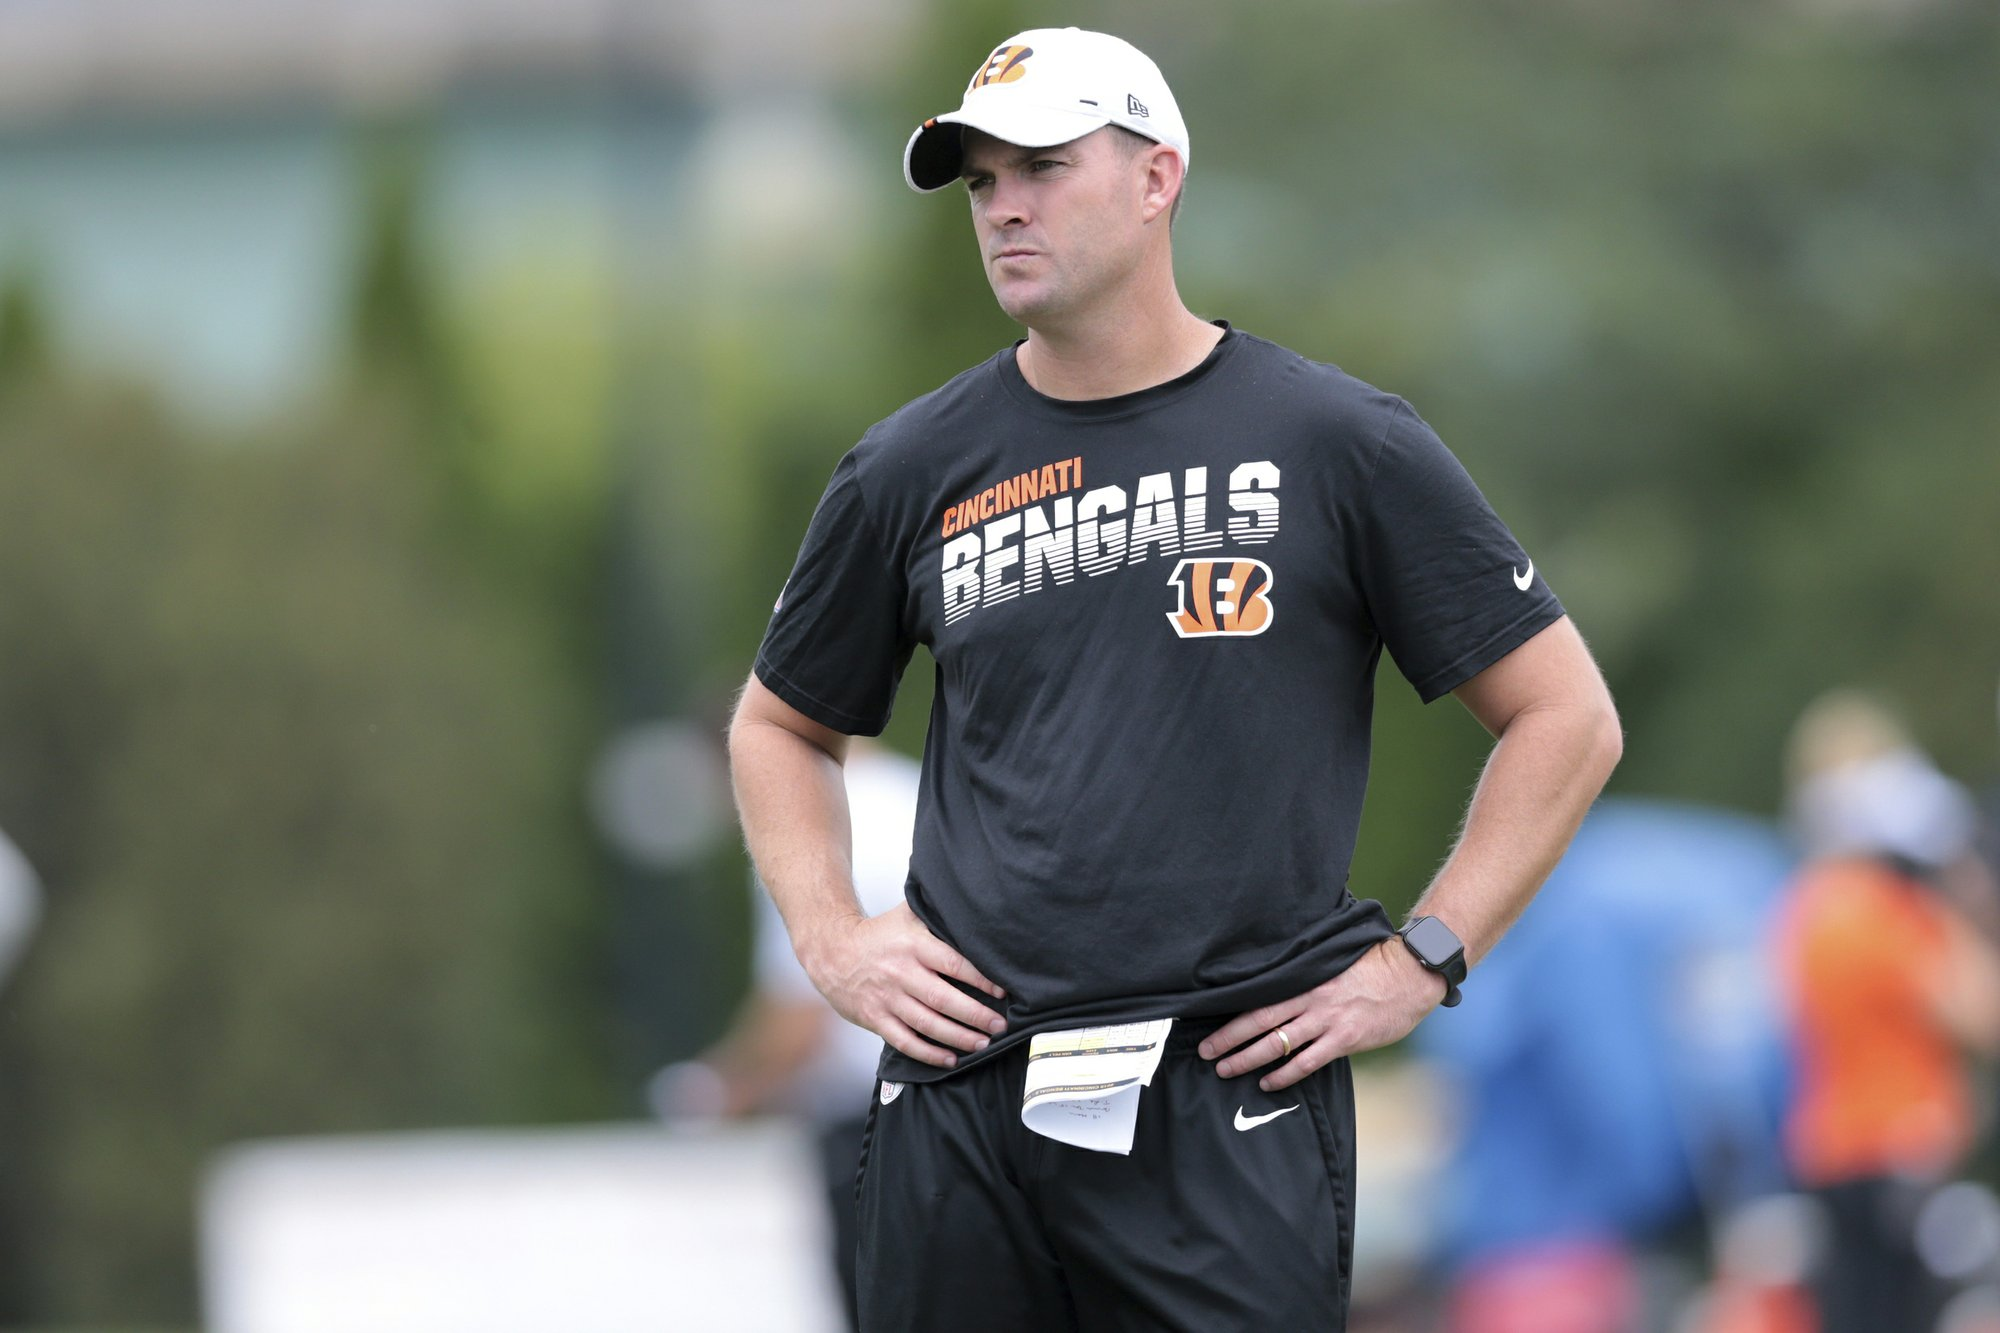 NFL 2019: Bengals facing daunting odds, history under Taylor